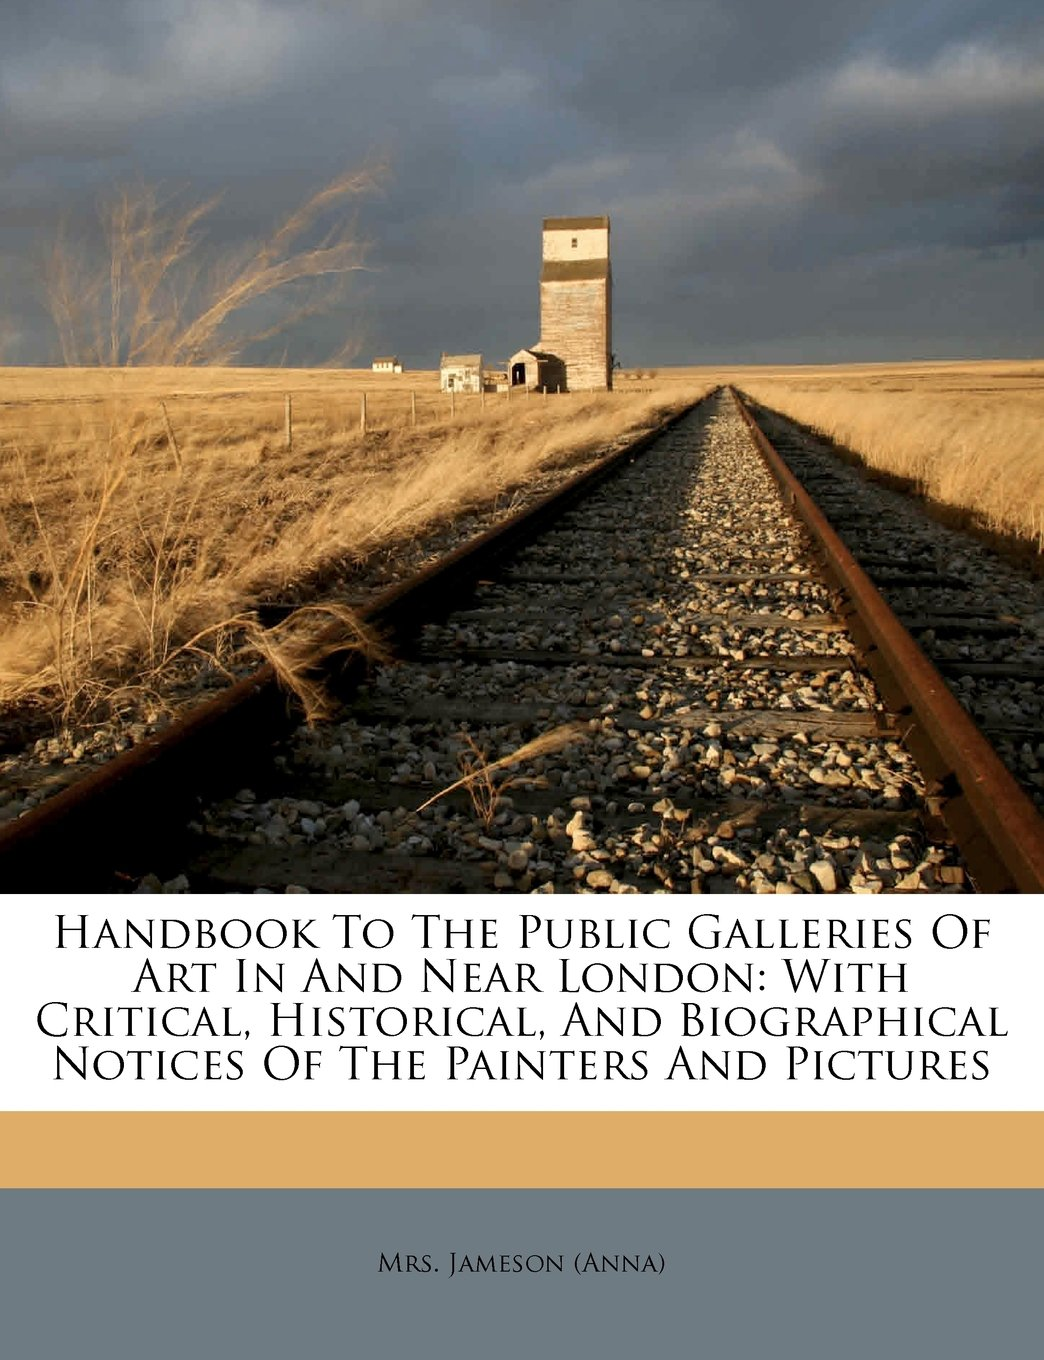 Download Handbook To The Public Galleries Of Art In And Near London: With Critical, Historical, And Biographical Notices Of The Painters And Pictures ebook